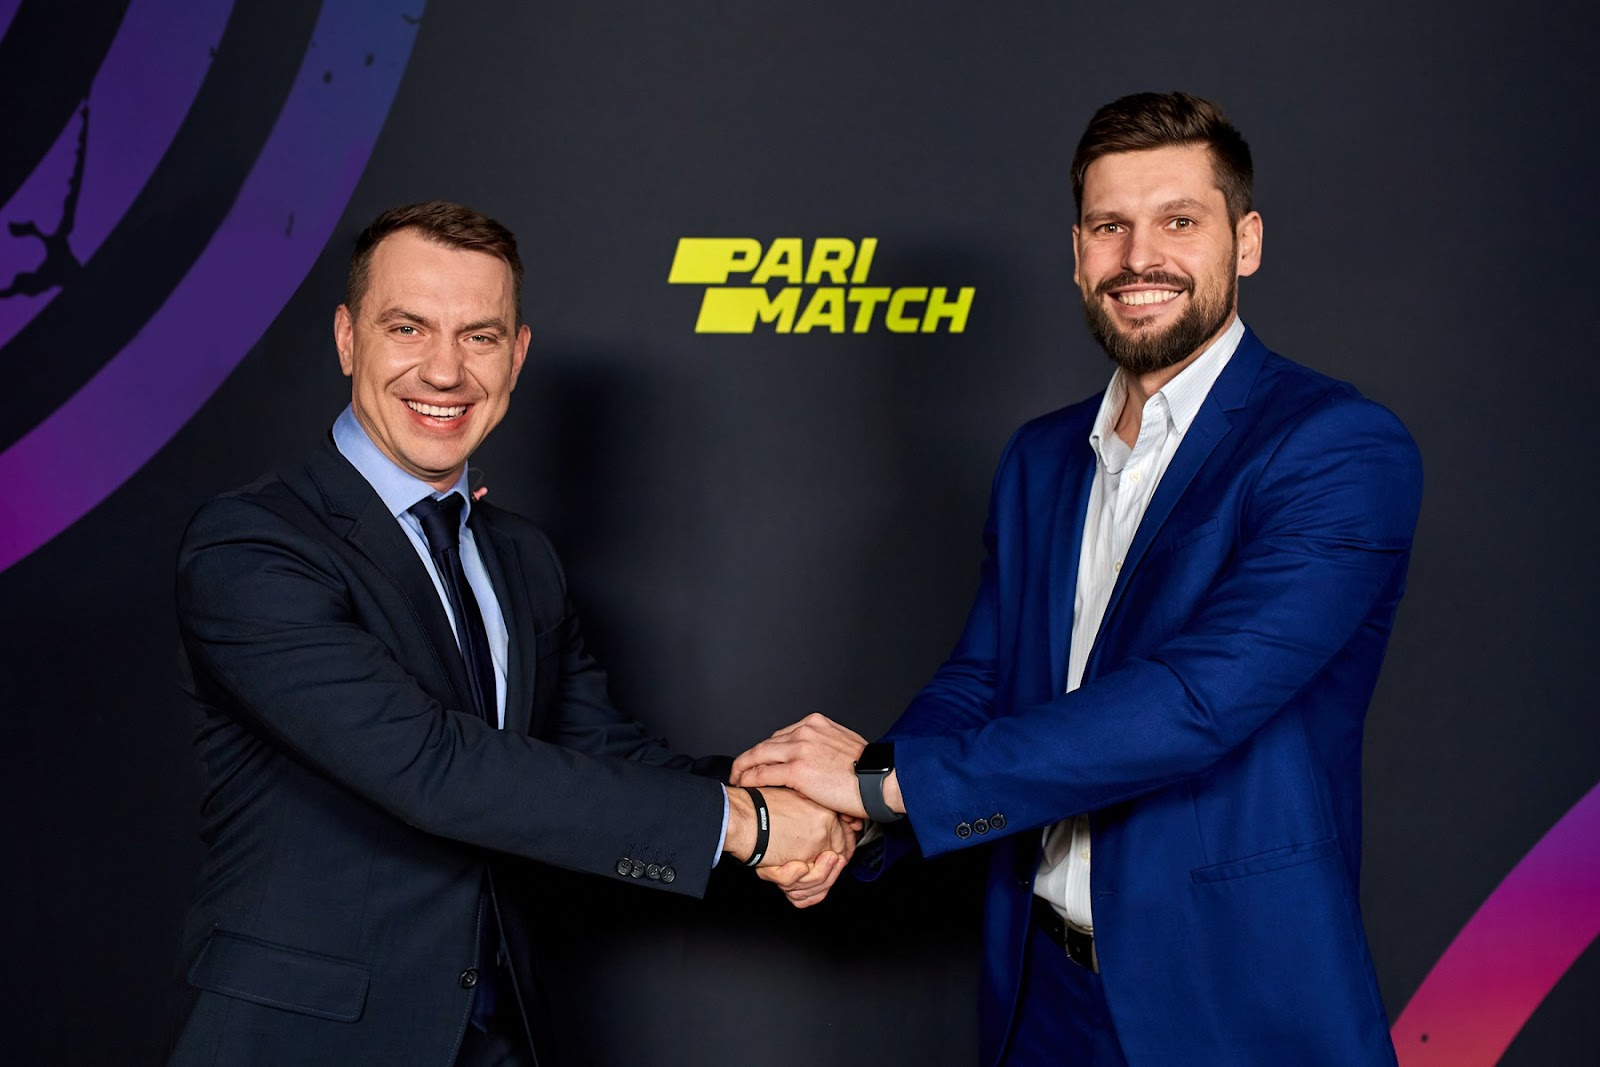 Representatives of both Virtus.pro and Parimatch shake hands after the renewal of the partnership